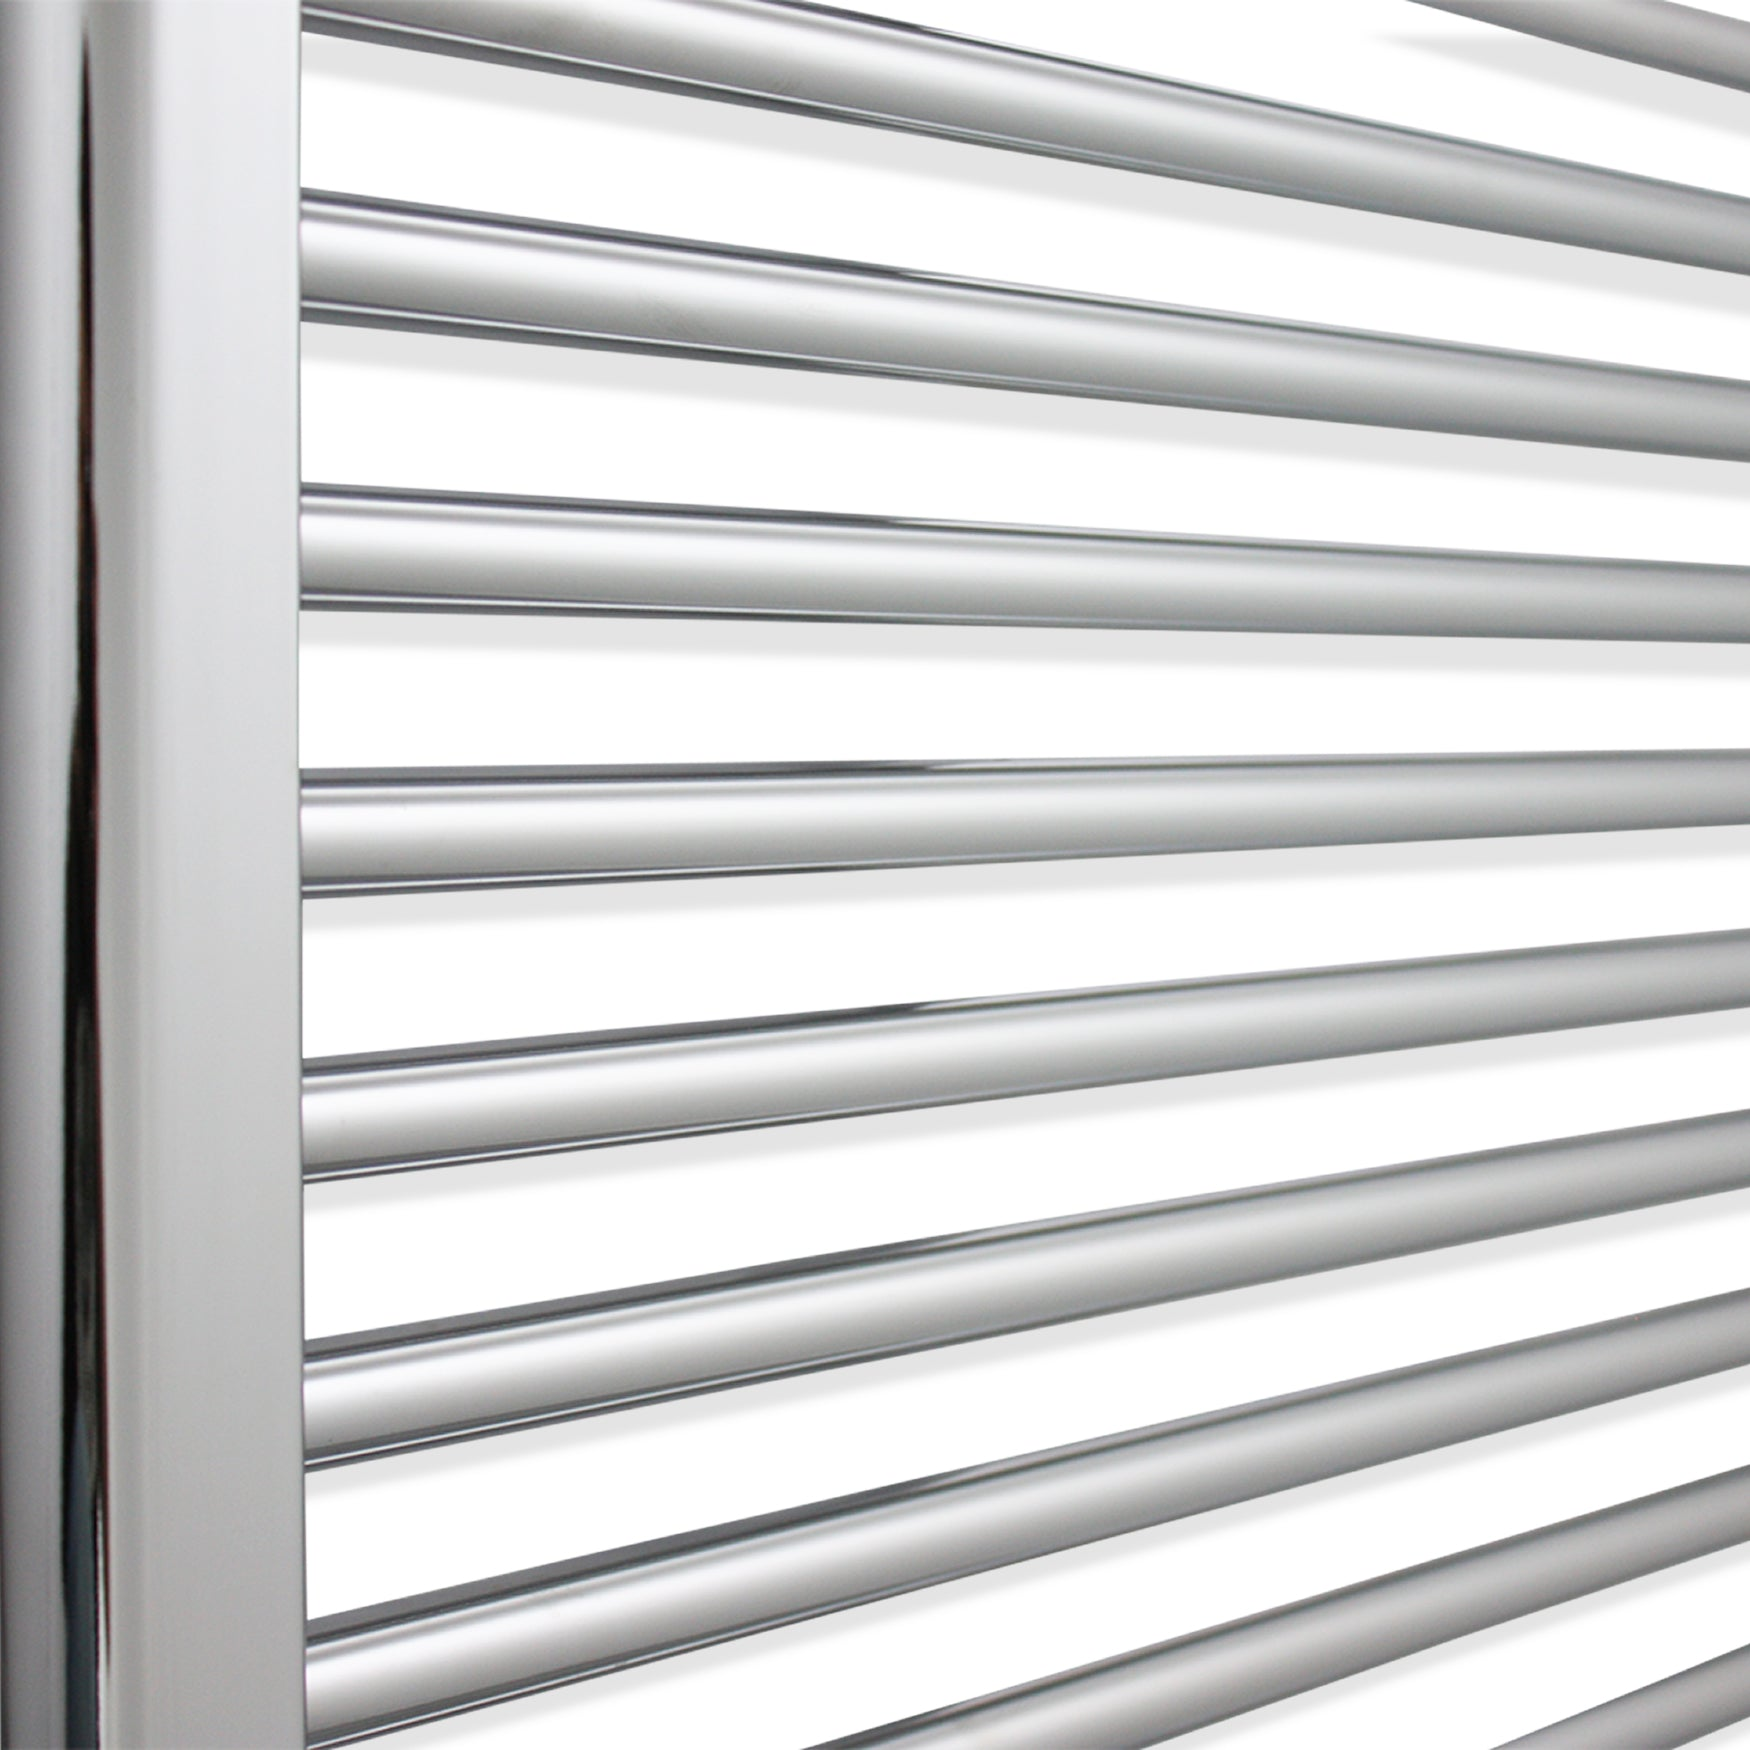 800mm Wide 1200mm High Flat Chrome Heated Towel Rail Radiator HTR